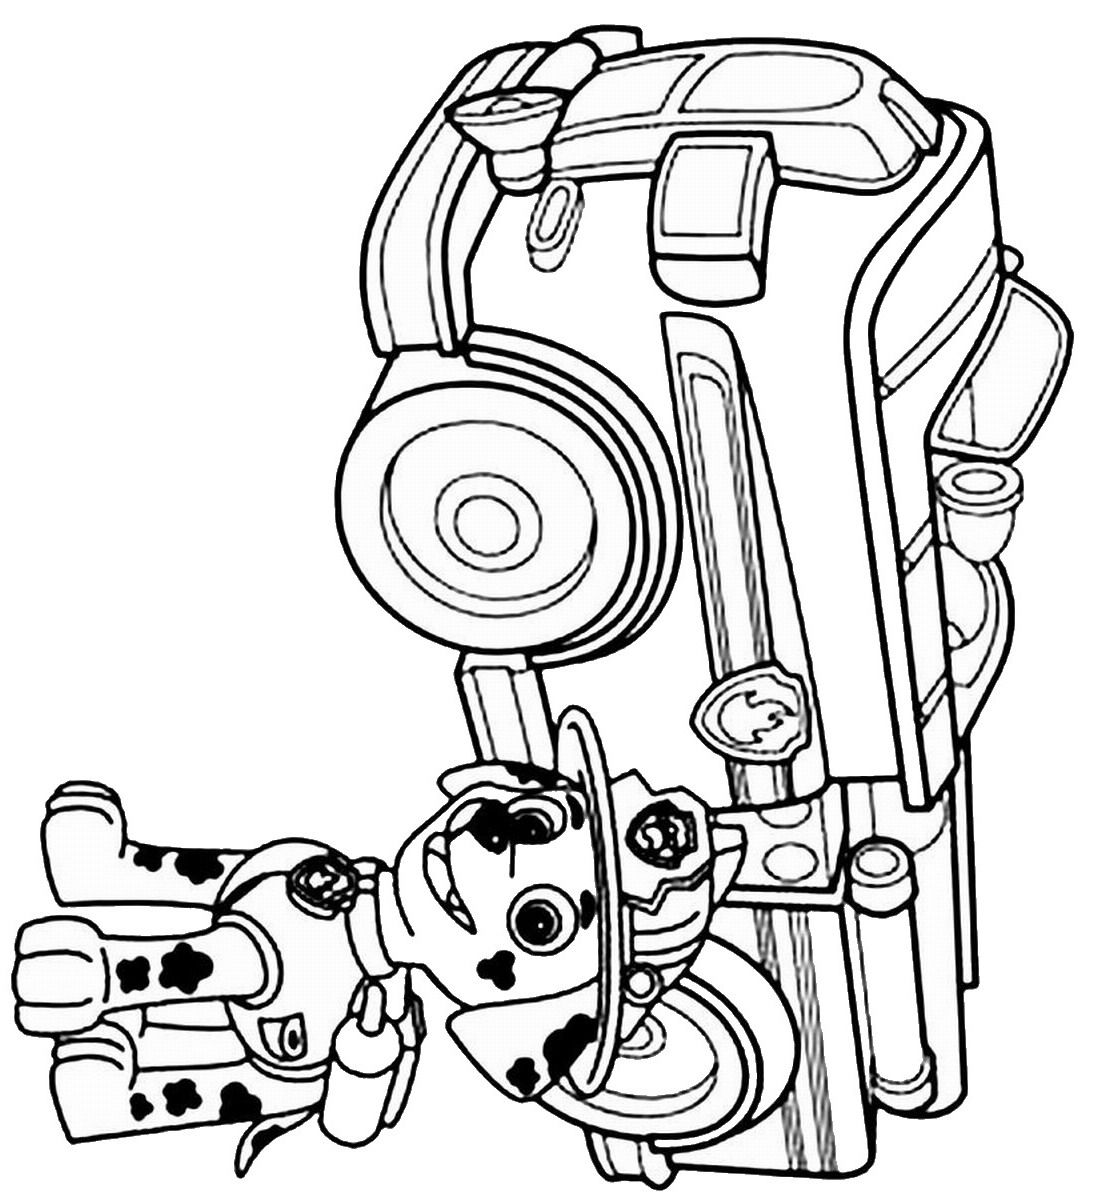 Paw patrol coloring pages robo dog - Marshall With His Firetruck Coloring Page Paw Patrol